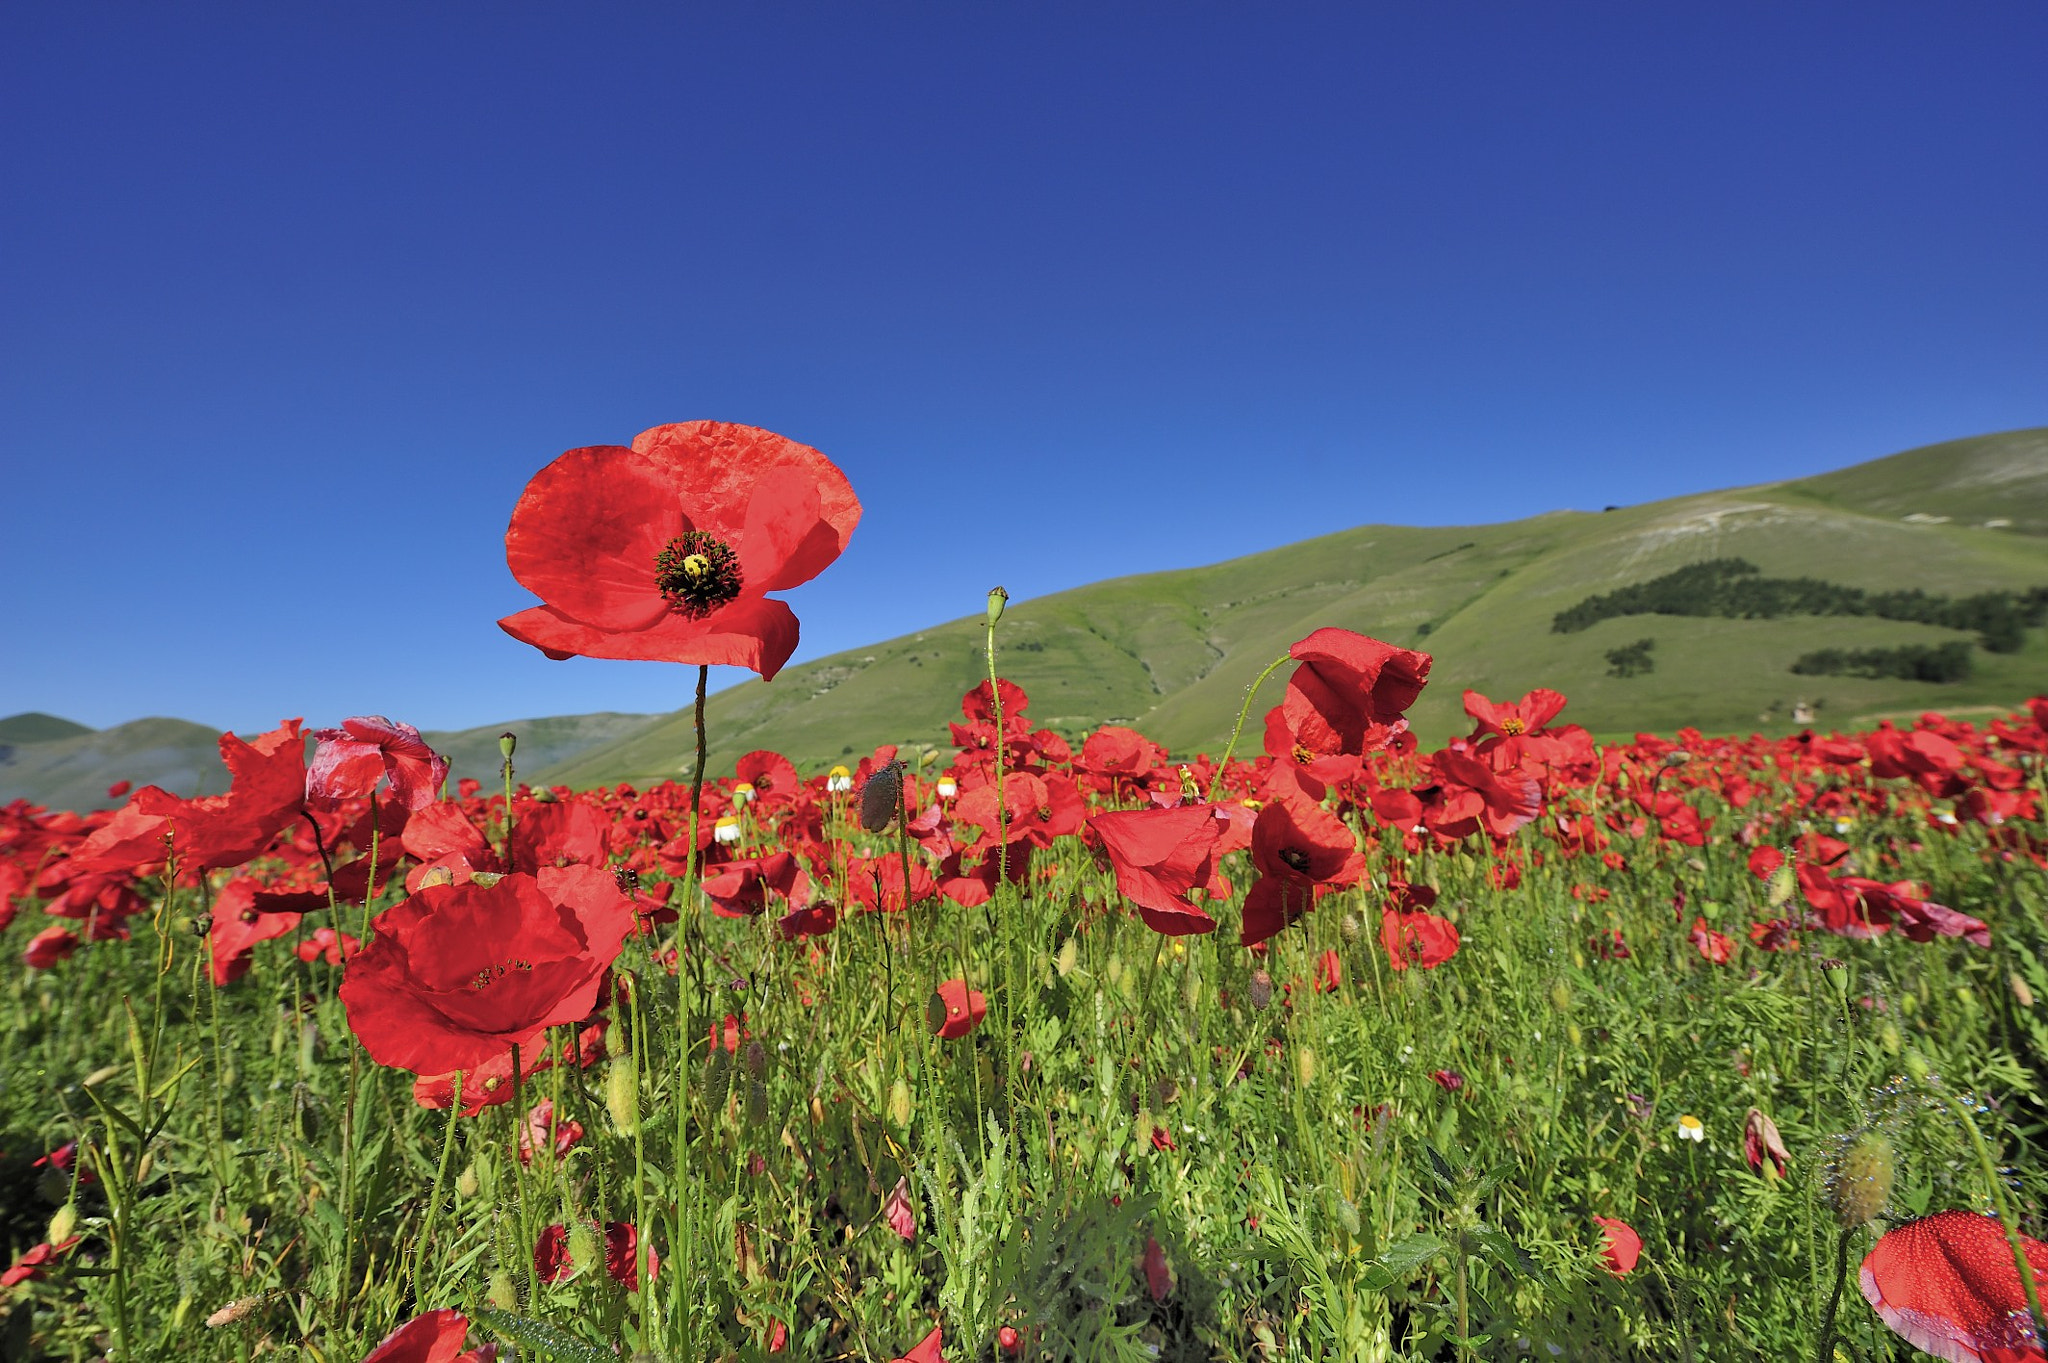 Photograph Poppys by Alessandro Galassi on 500px